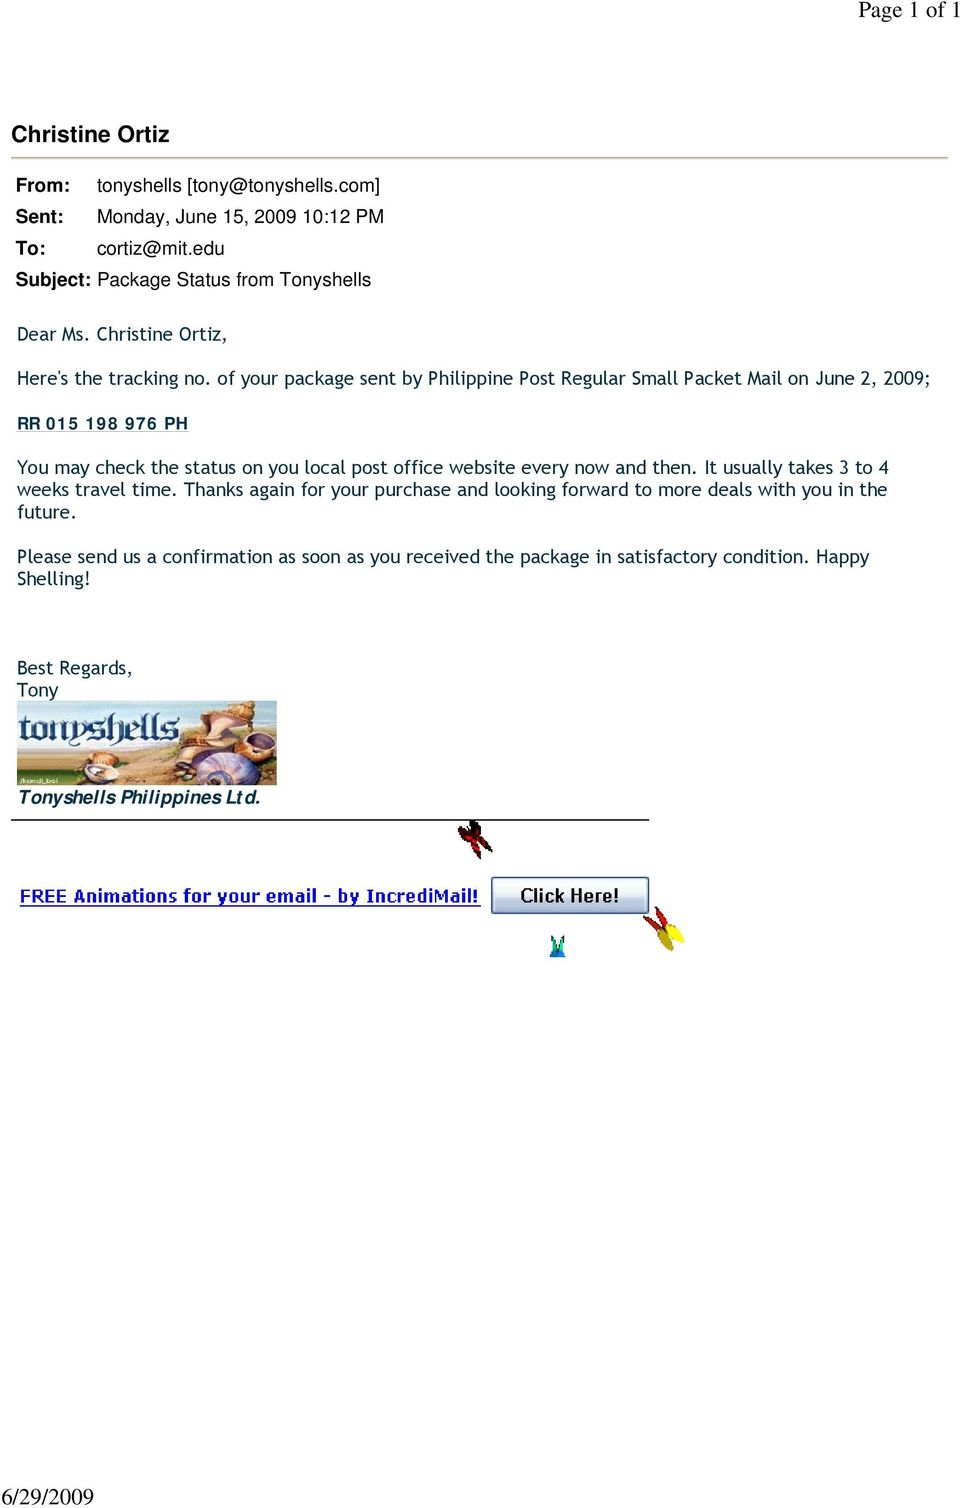 of your package sent by Philippine Post Regular Small Packet Mail on June 2, 2009; RR 015 198 976 PH You may check the status on you local post office website every now